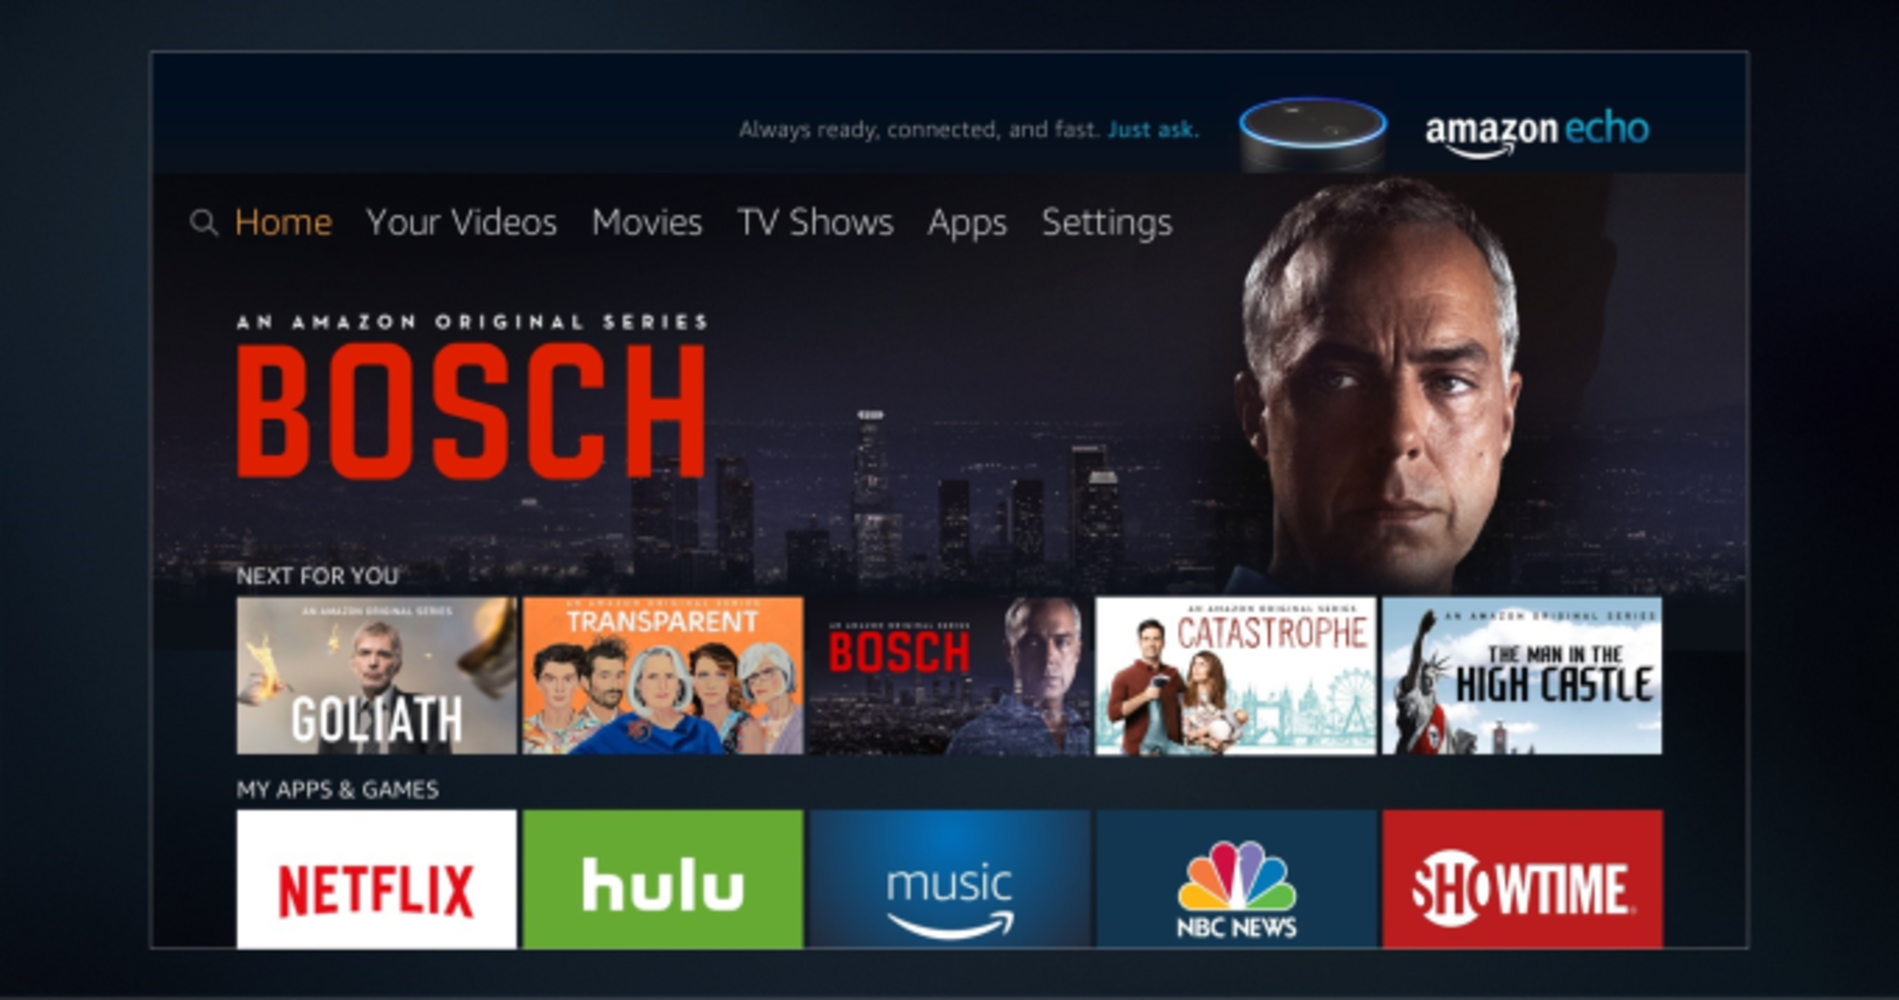 New interface of Amazon Fire TV